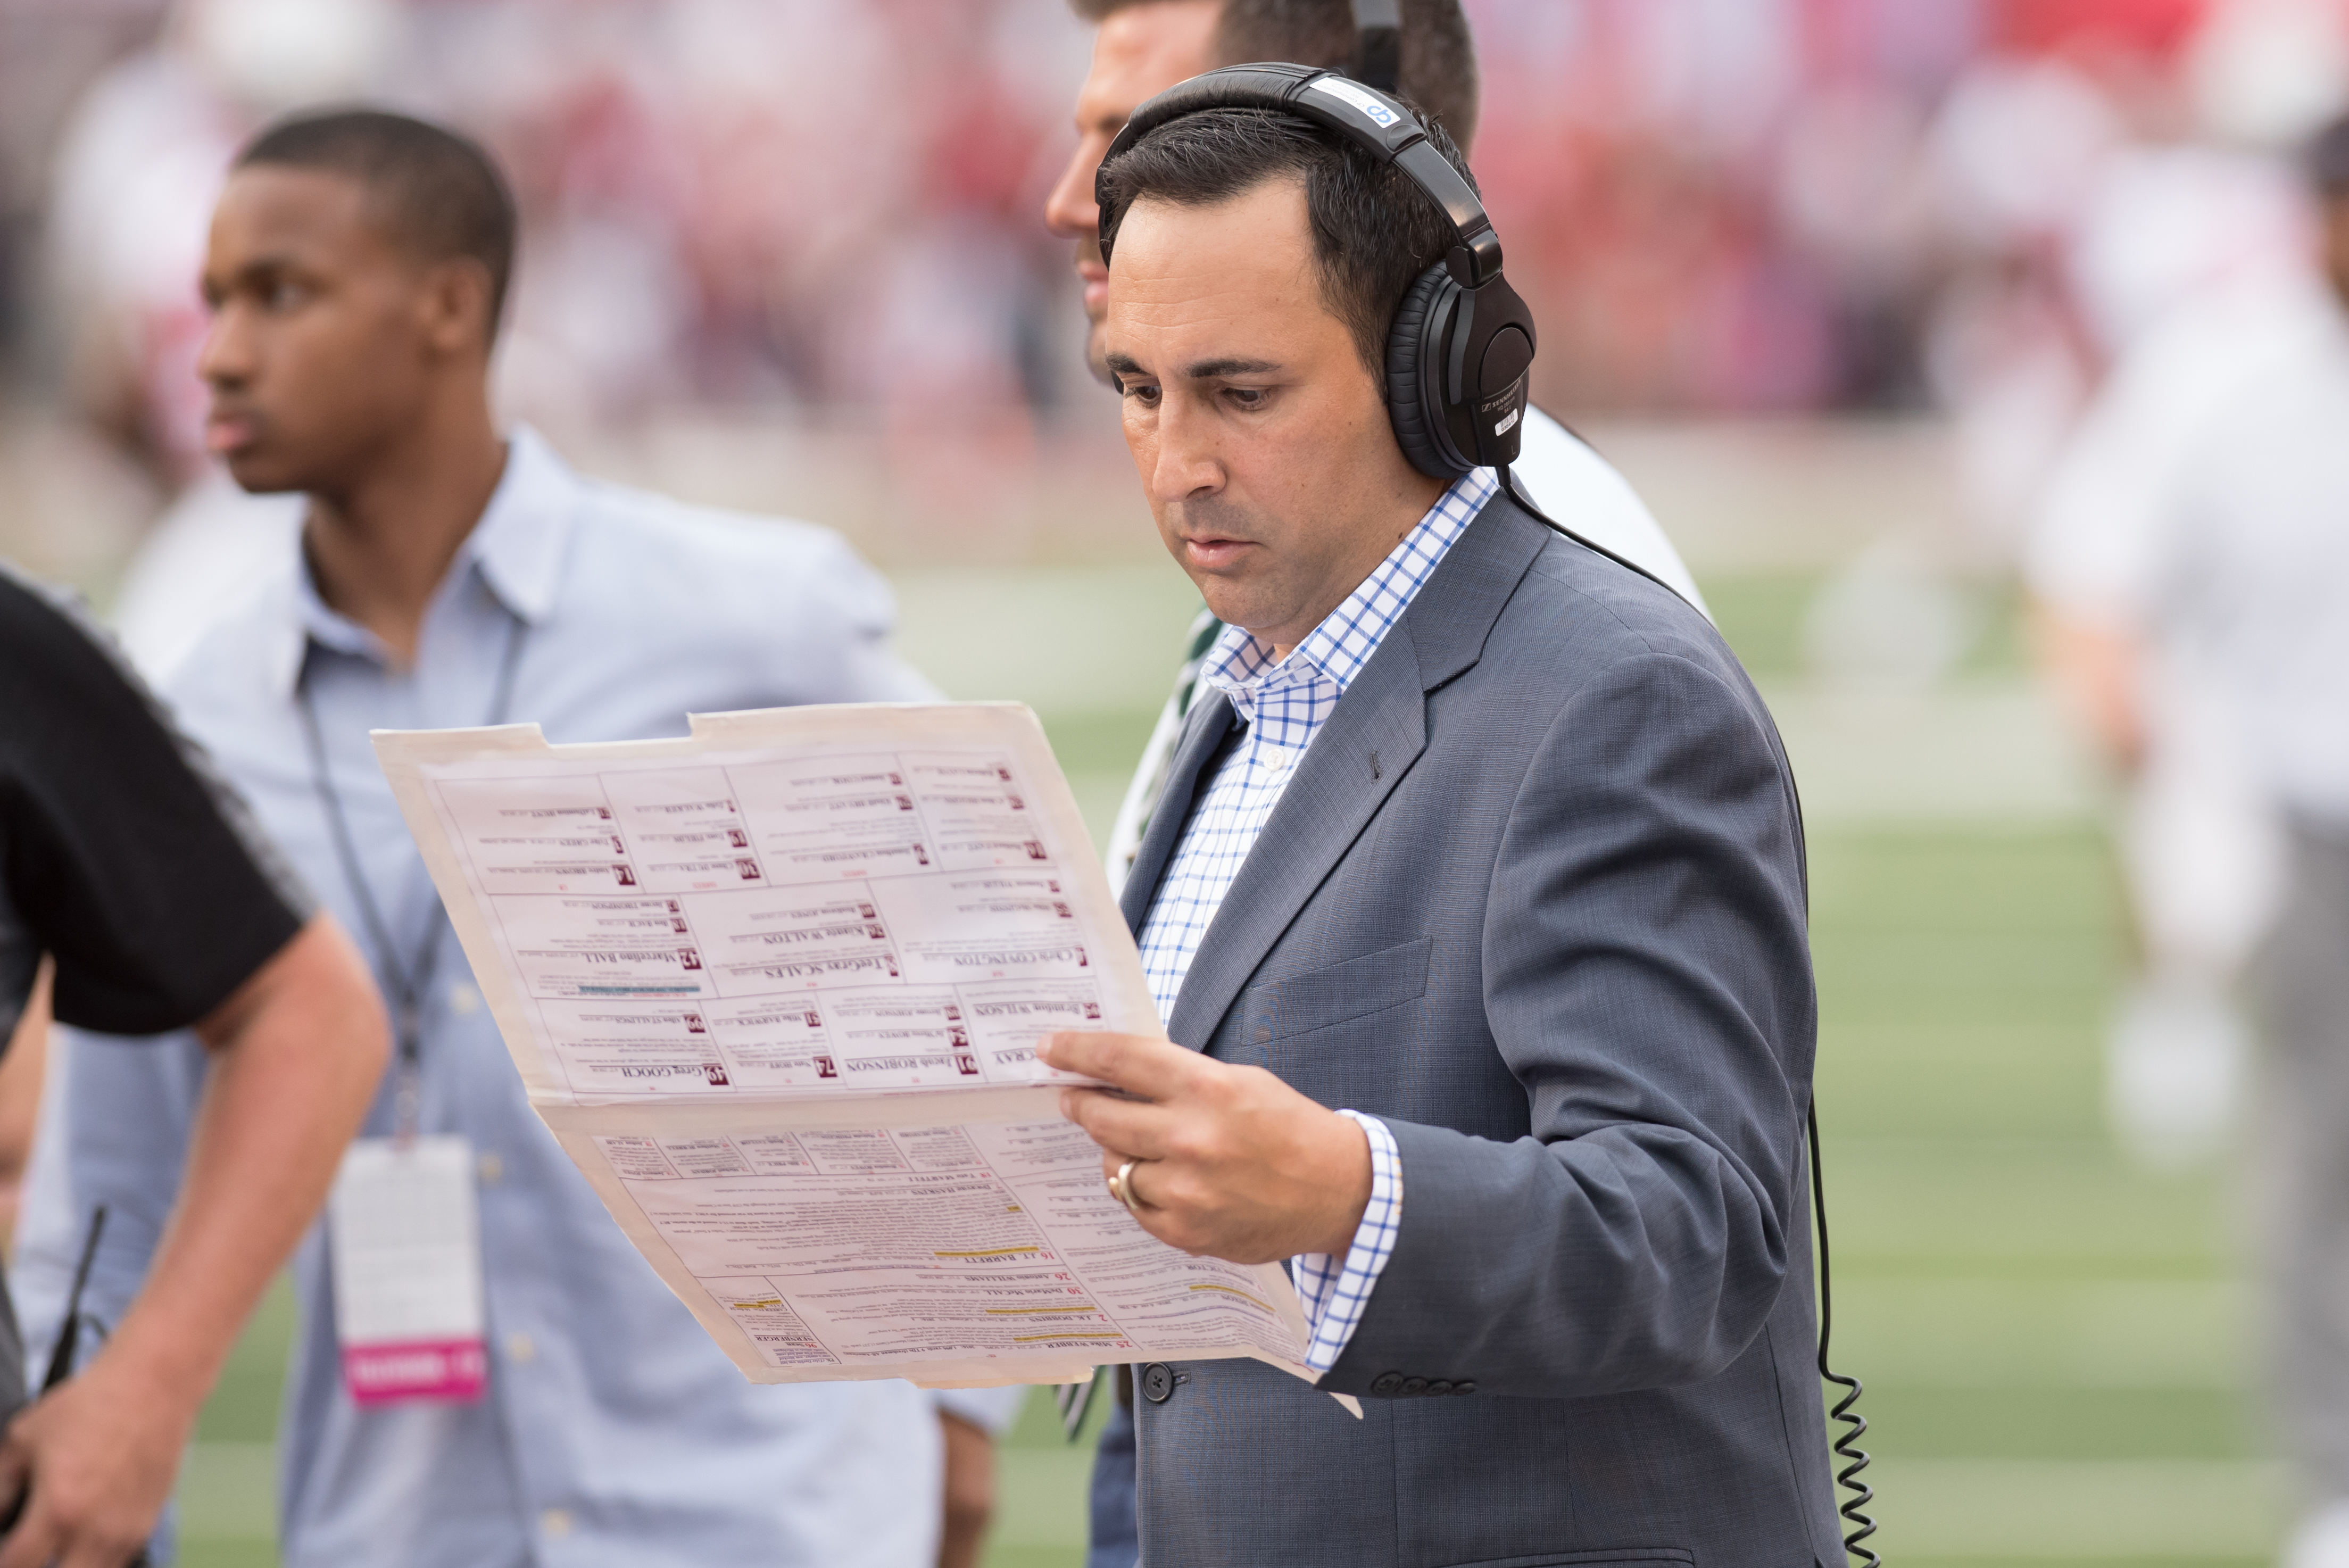 COLLEGE FOOTBALL: AUG 31 Ohio State at Indiana